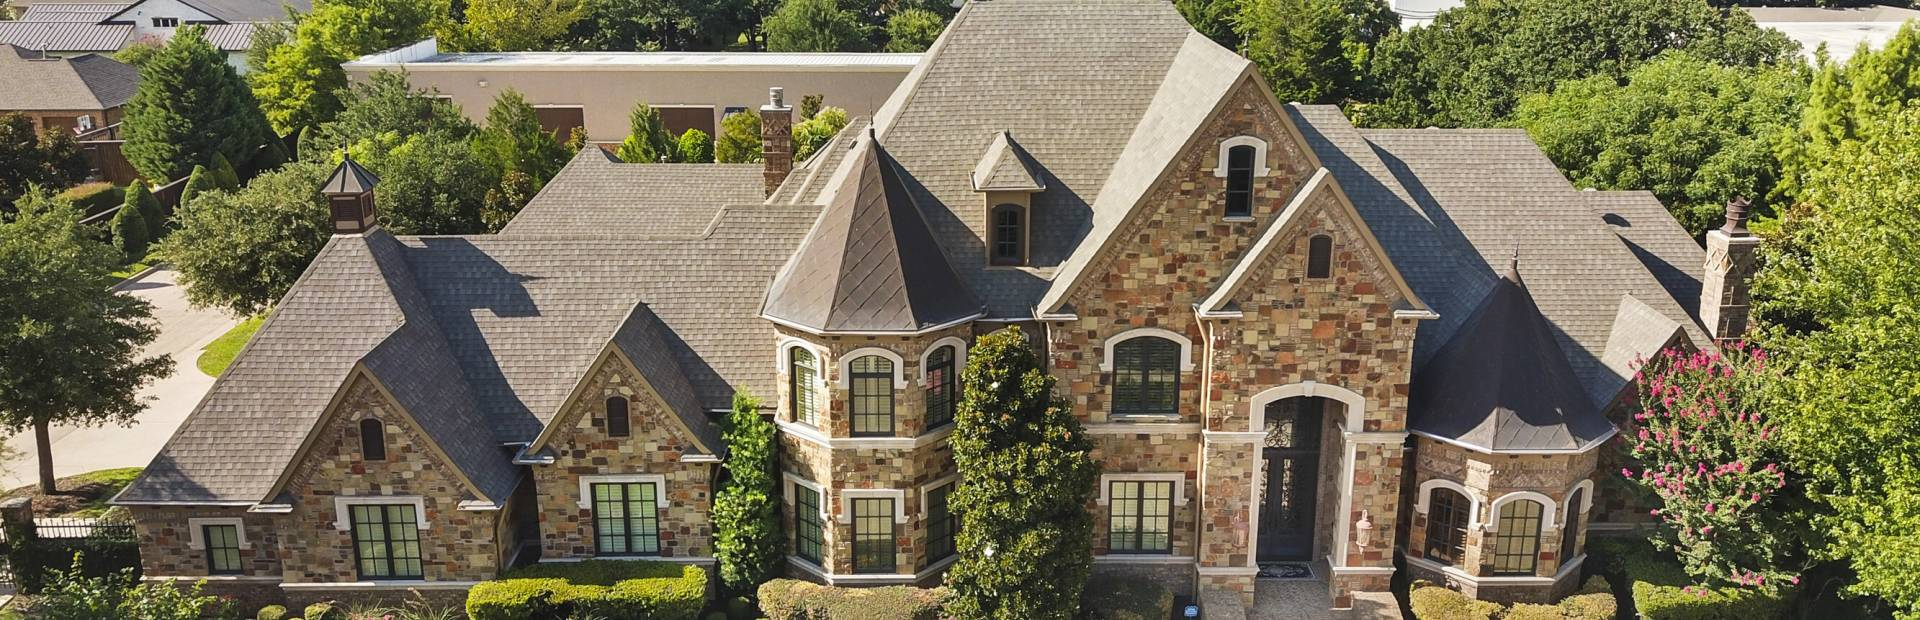 Luxury Real Estate Mansions For Sale